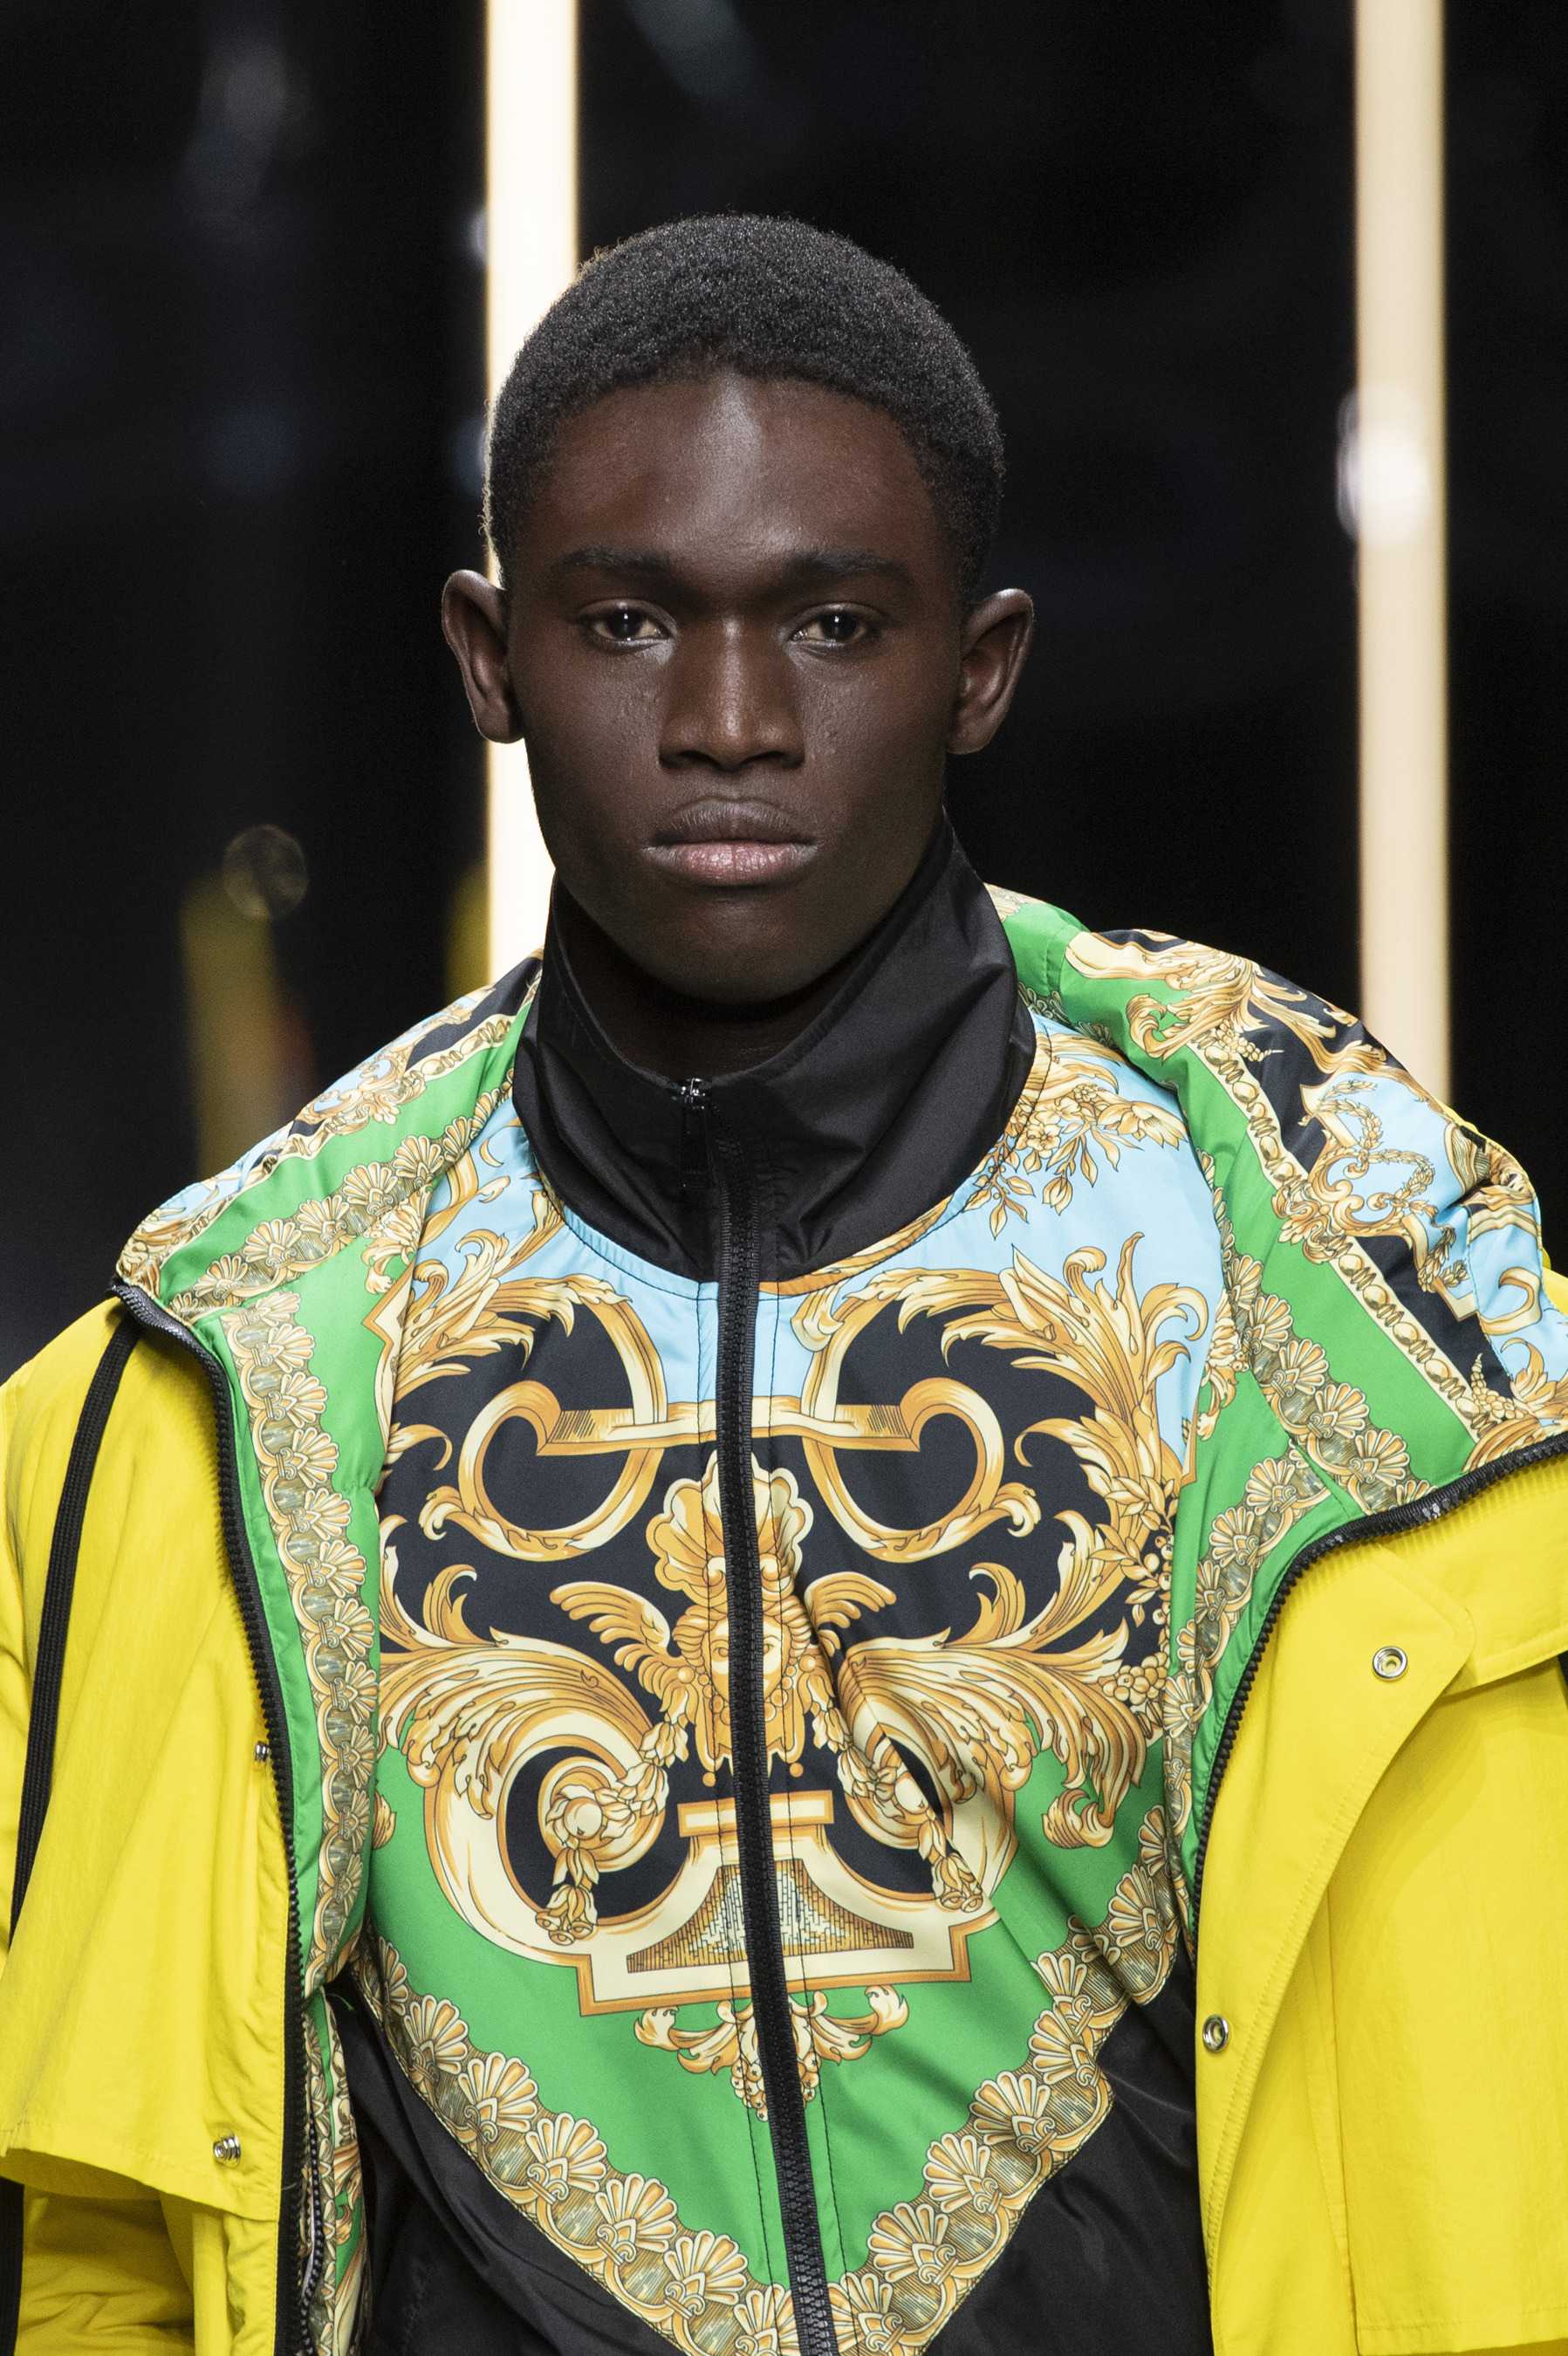 Versace Fall 2019 Men's Fashion Show details